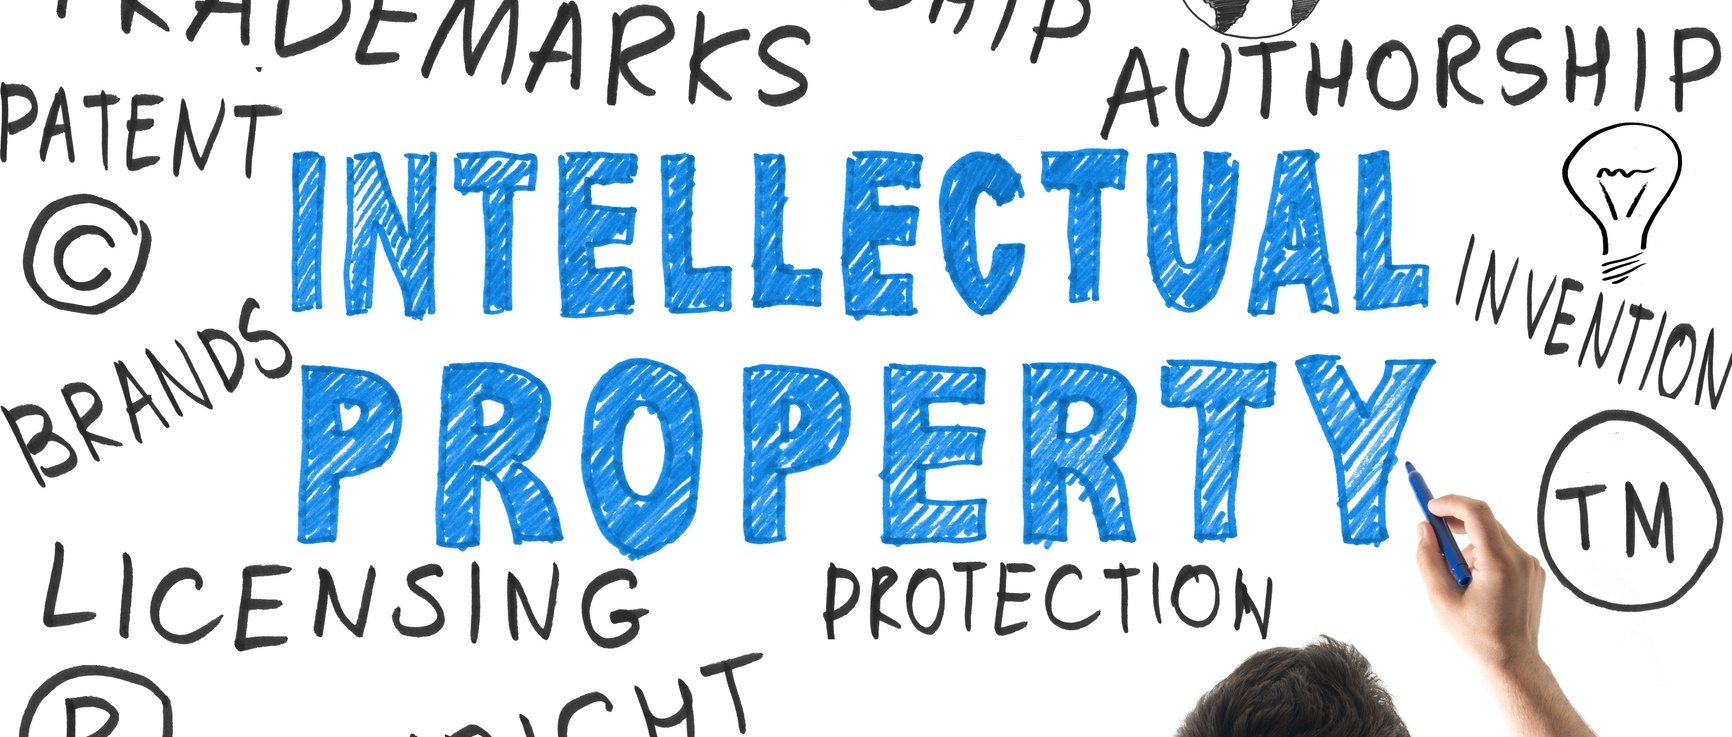 How To Protect Intellectual Property From Employees